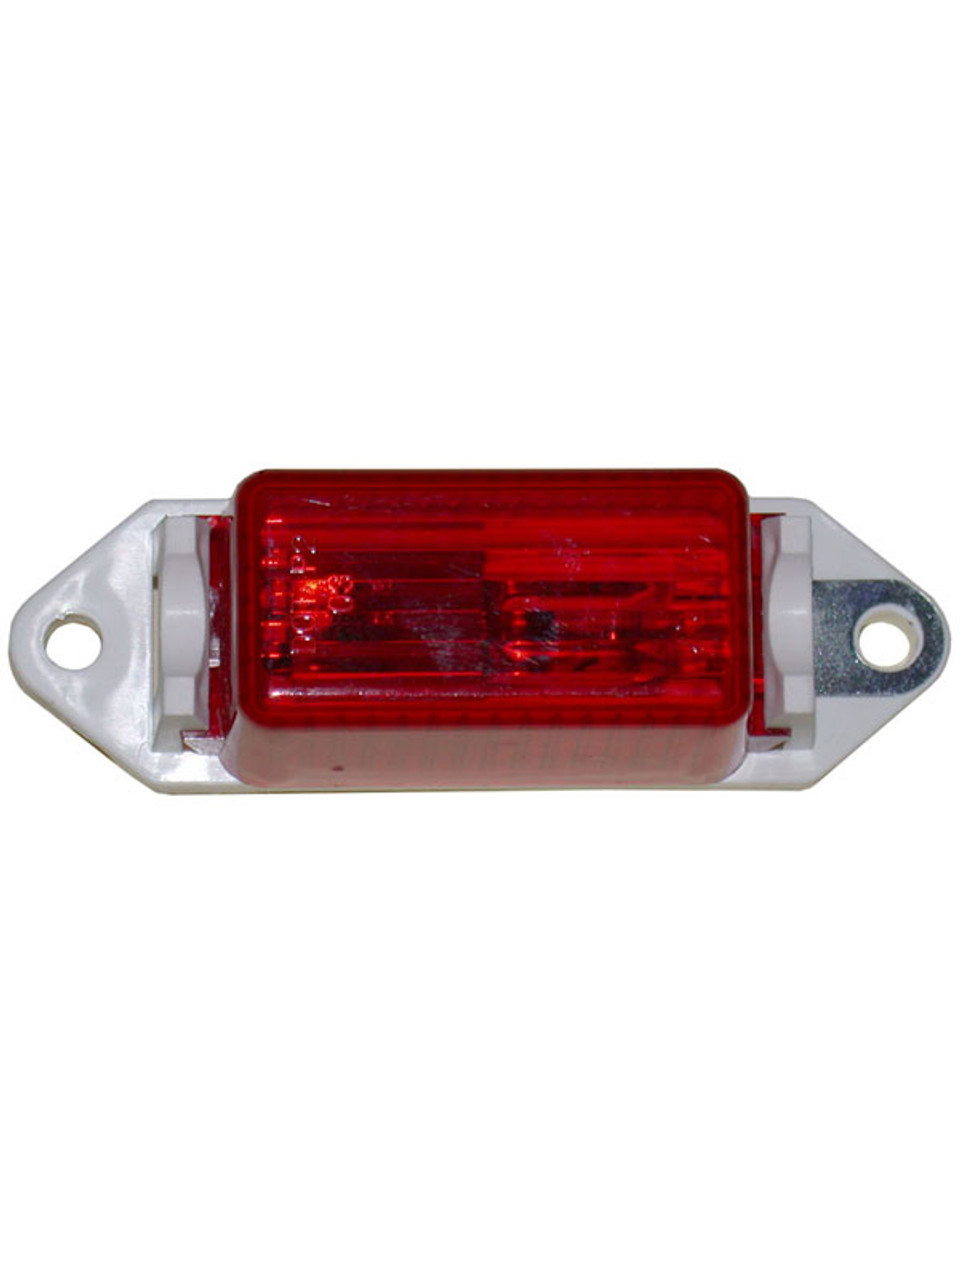 V107R --- Mini-Light Clearance/Side Marker Light